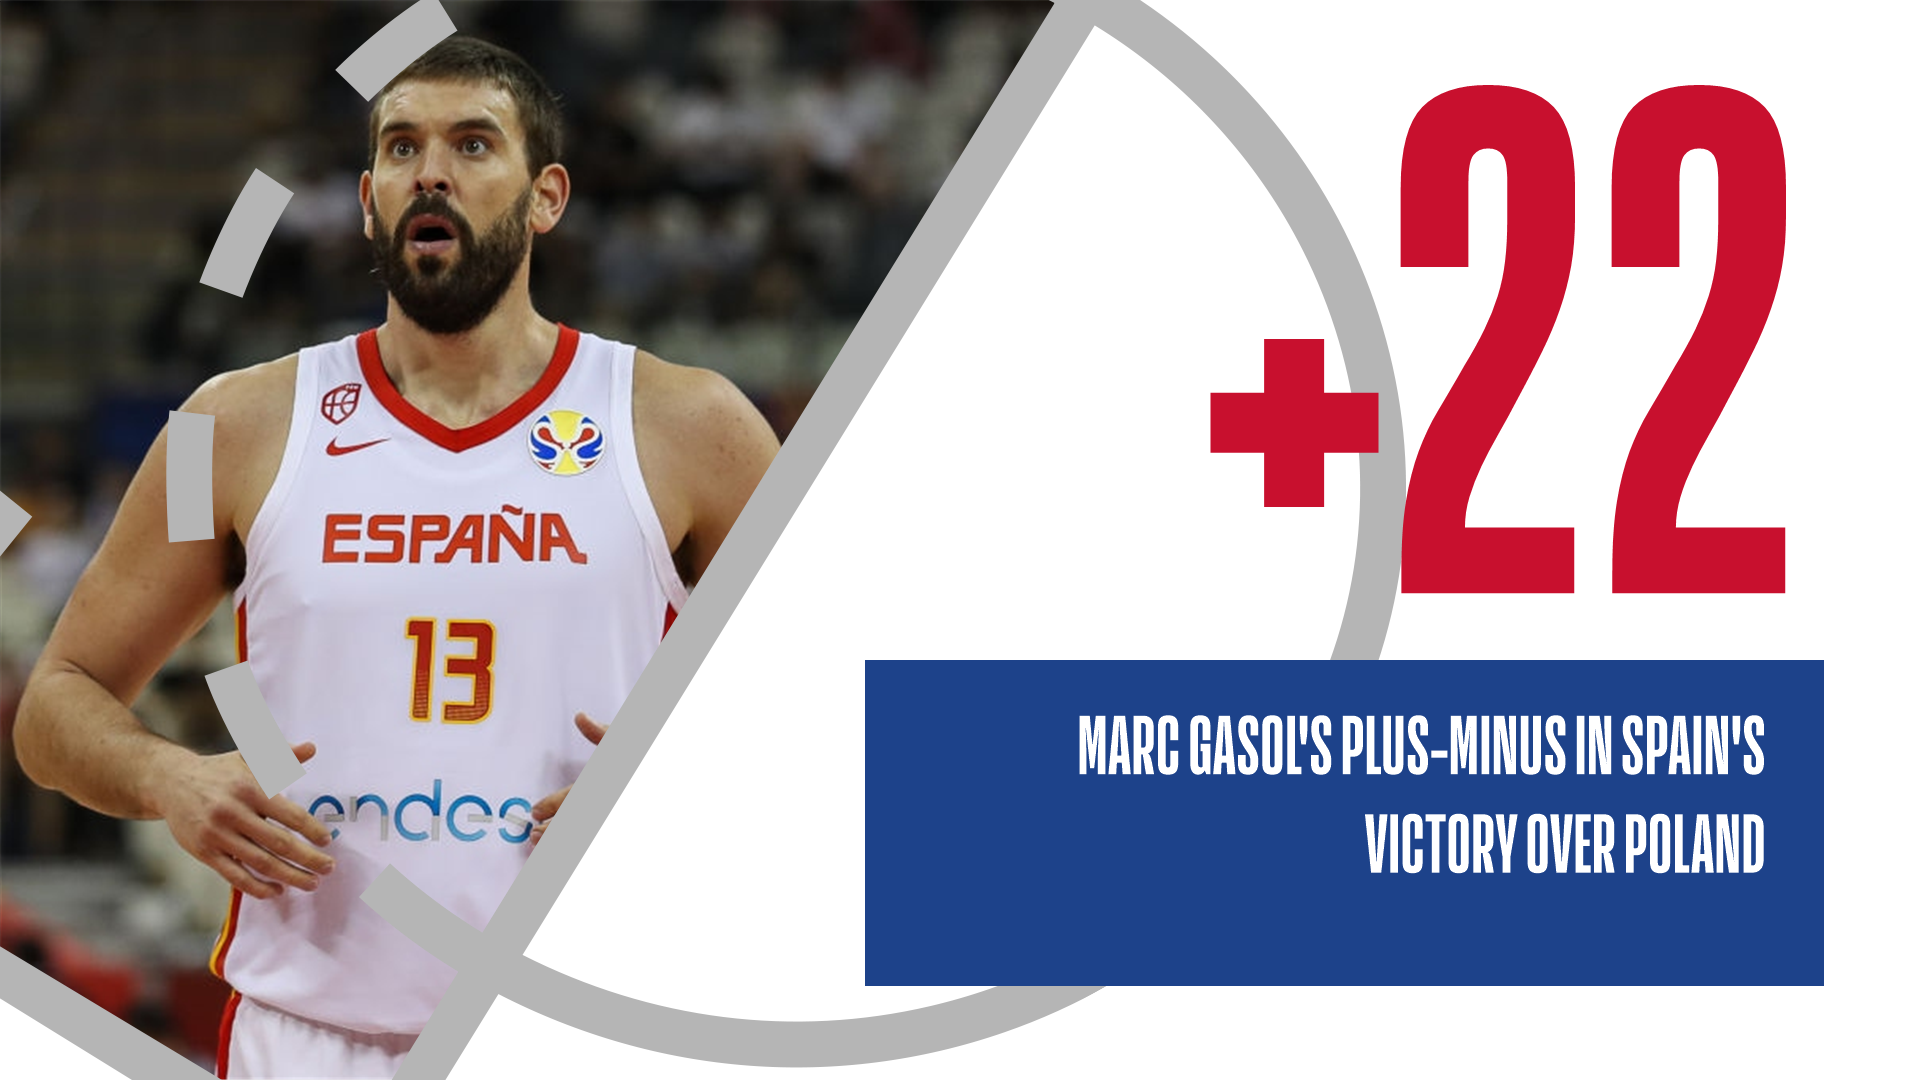 Marc Gasol finished with the best plus-minus of any player in Spain's win in the Quarter-Finals.